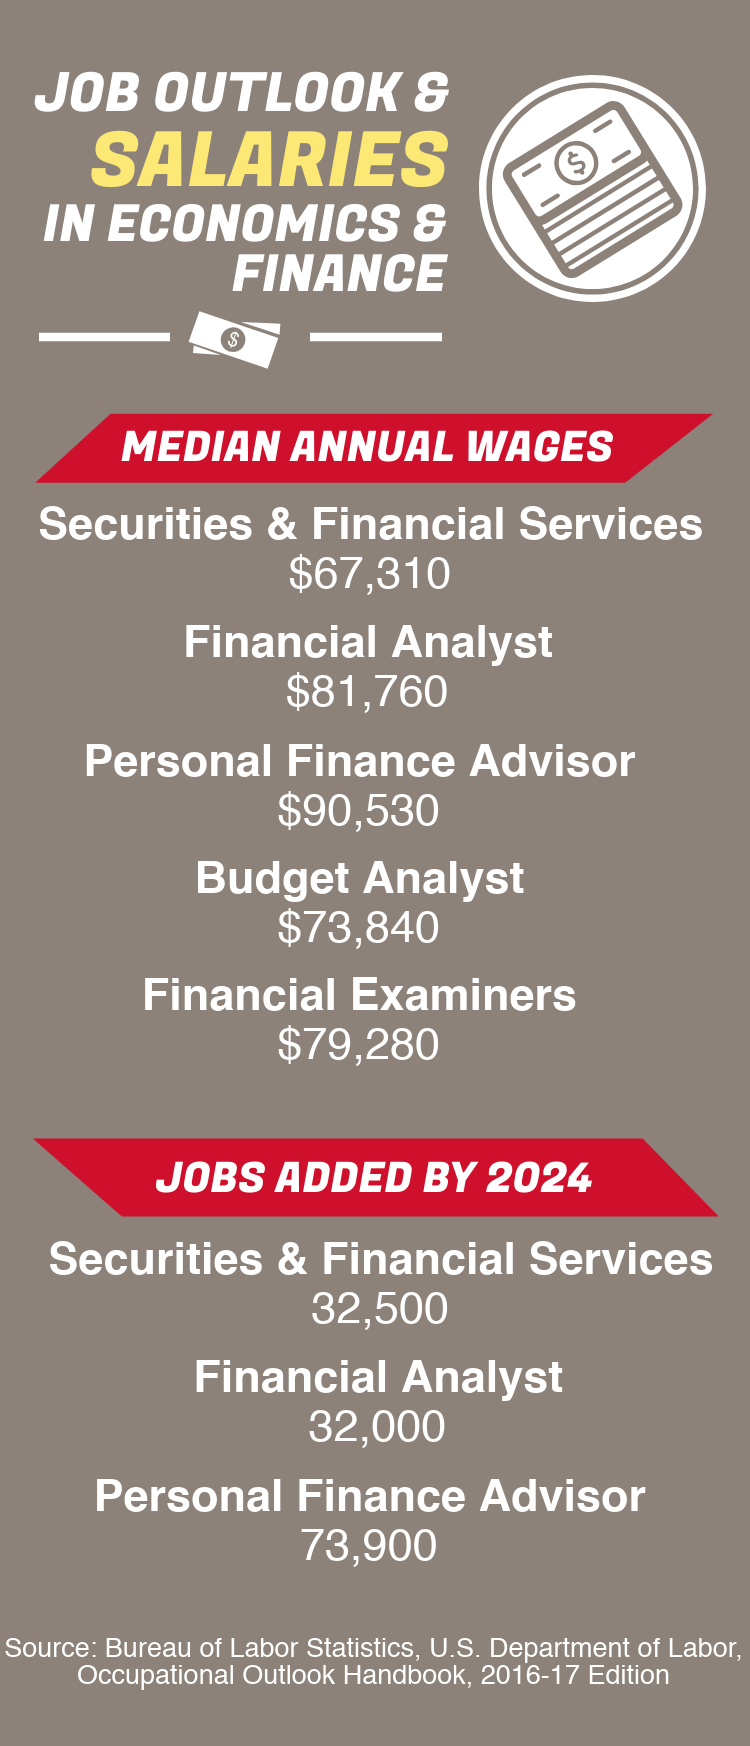 Infographic: Job outlook and salaries in economics and finance, median wages for Securities and financial services are $67,310, financial analyst are $81,760, personal financial advisor are $90,530, budget analyst are $73,840, and financial examiners are $79,280. Jobs added through 2024 for securities and financial services are 32,500, financial analyst are 32,000, and personal financial analysts are 73,900